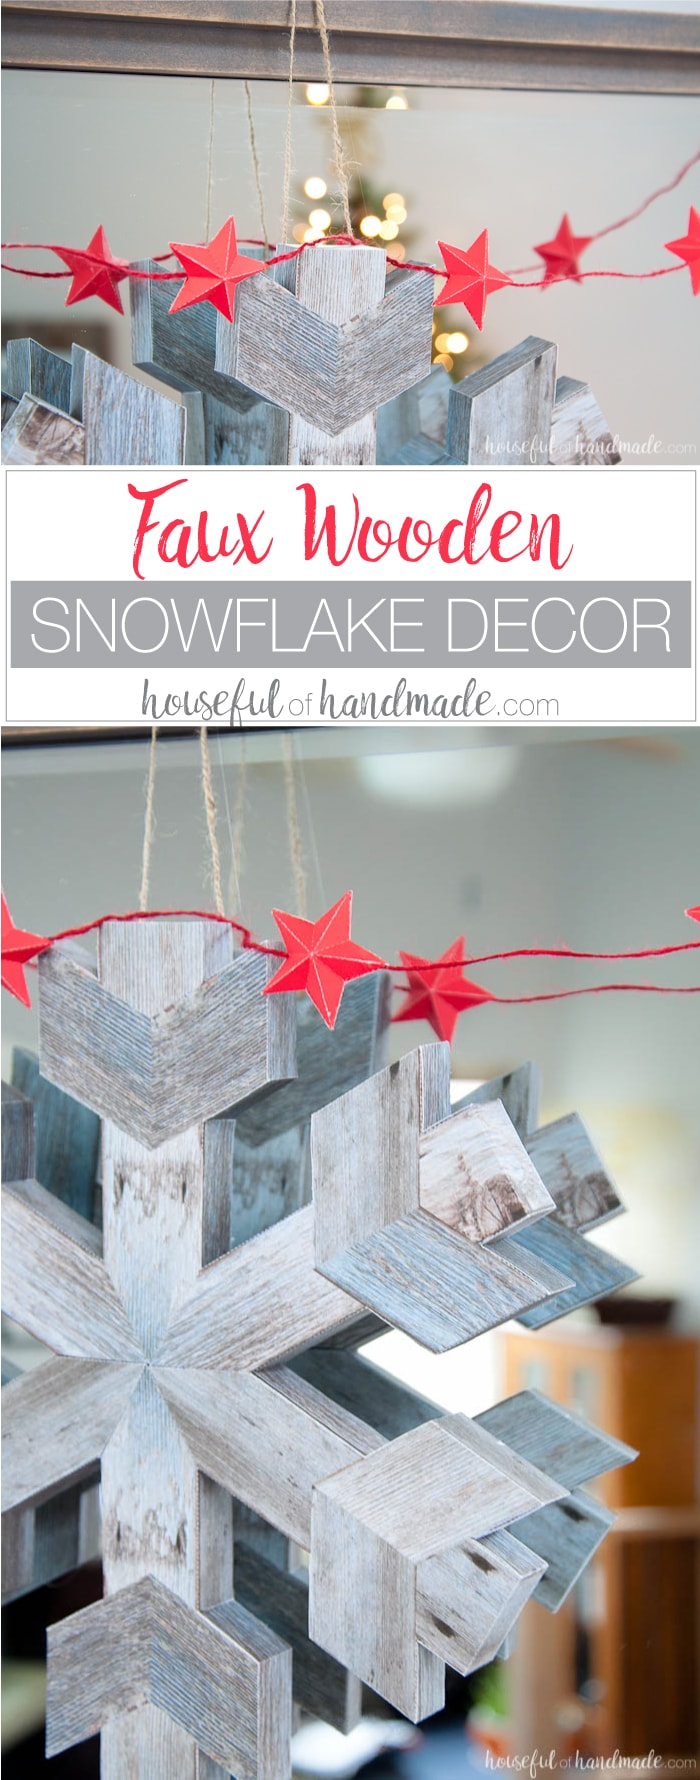 If you don't like power tools you can still get these perfect wood snowflakes for your winter decor. This easy faux wooden snowflake decor is made out of paper but looks just like real wood. Make a bunch to decorate your Christmas tree or winter mantle. | Housefulofhandmade.com